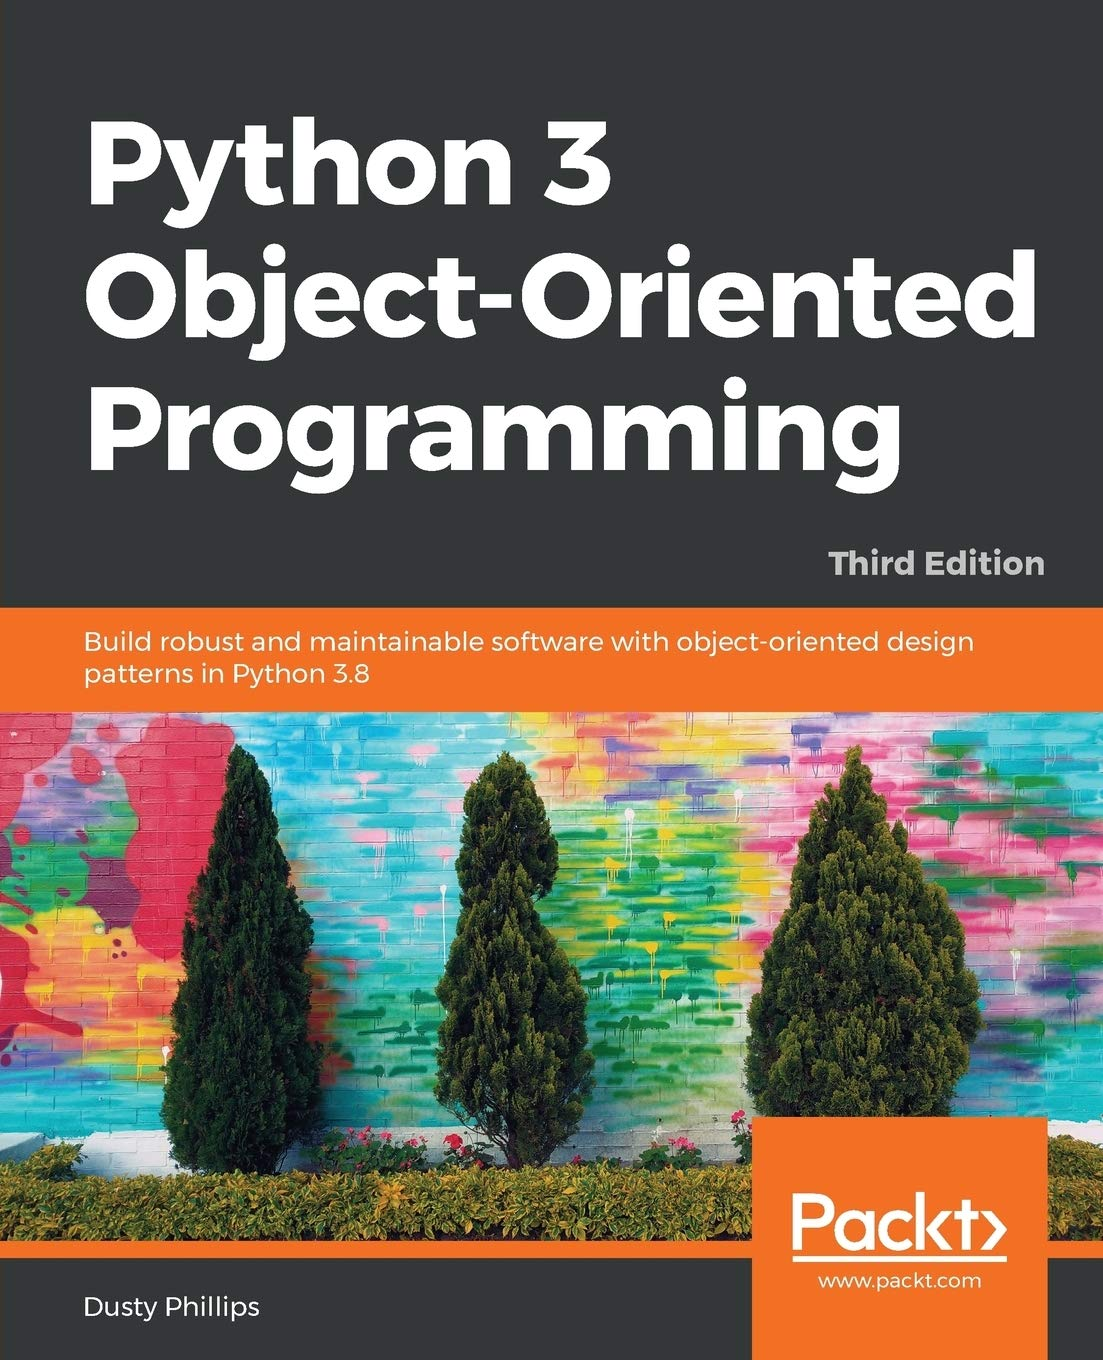 python 3 object-oriented programming pdf